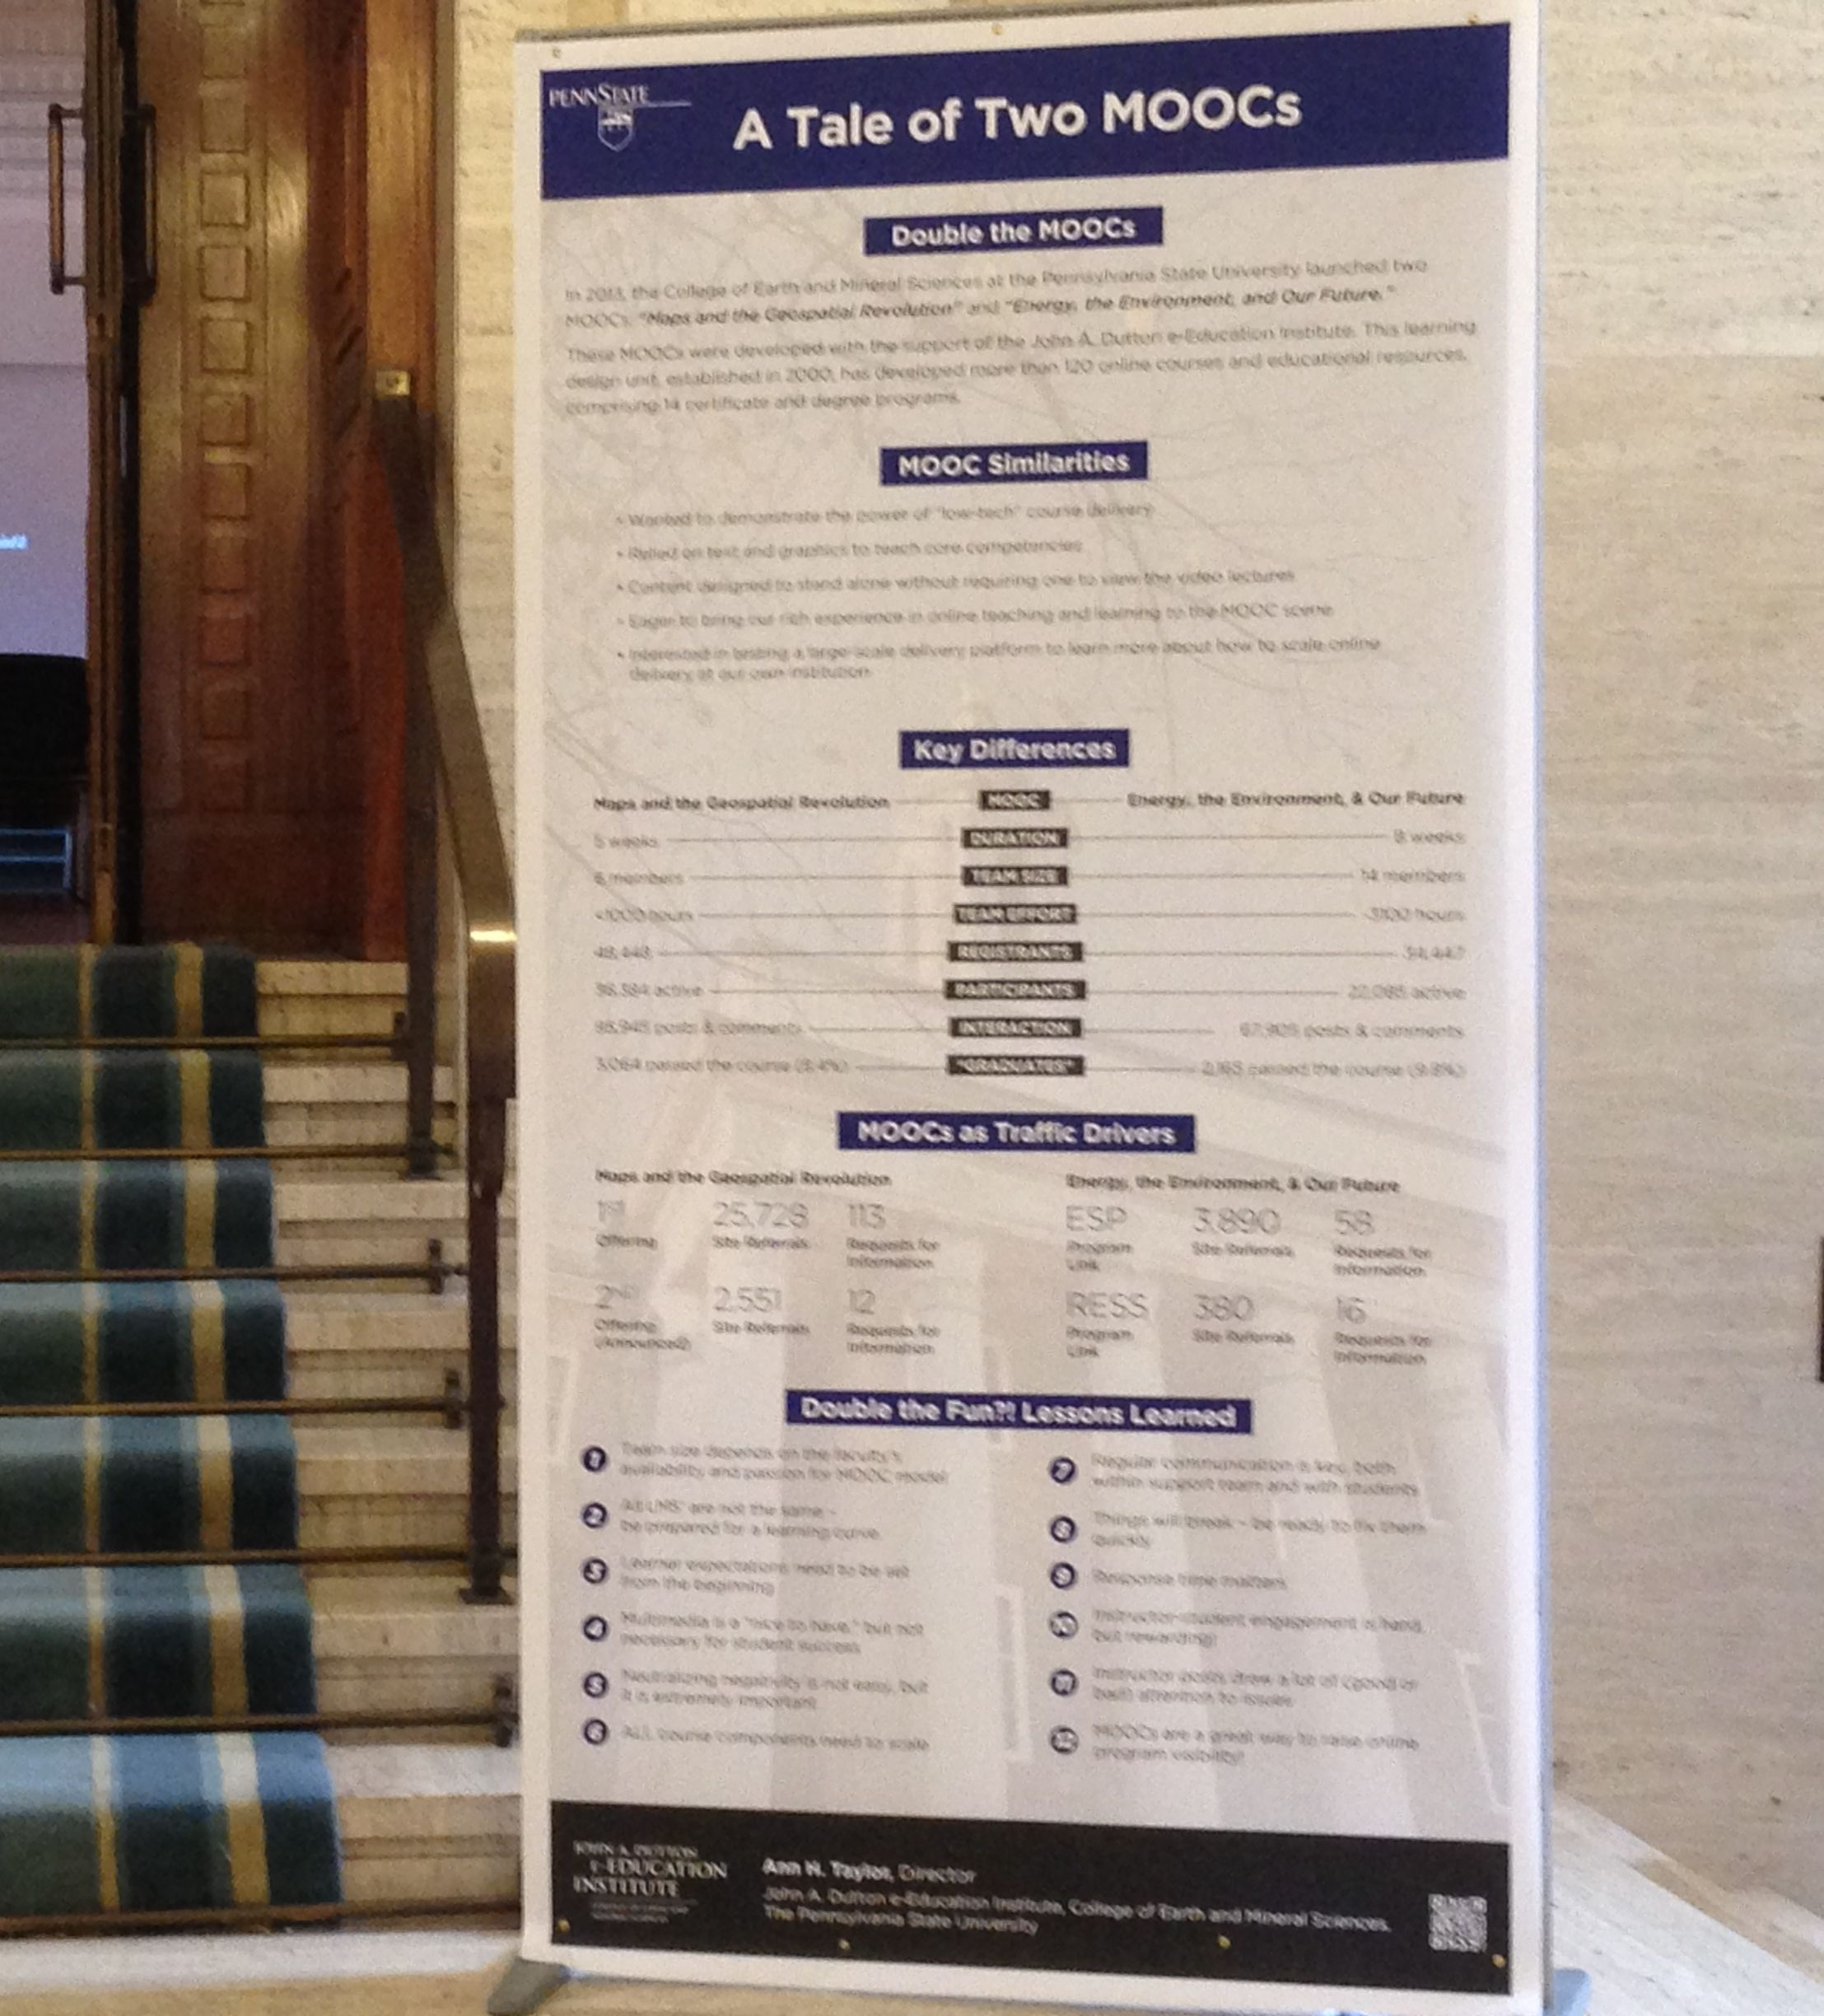 a tale of two moocs poster